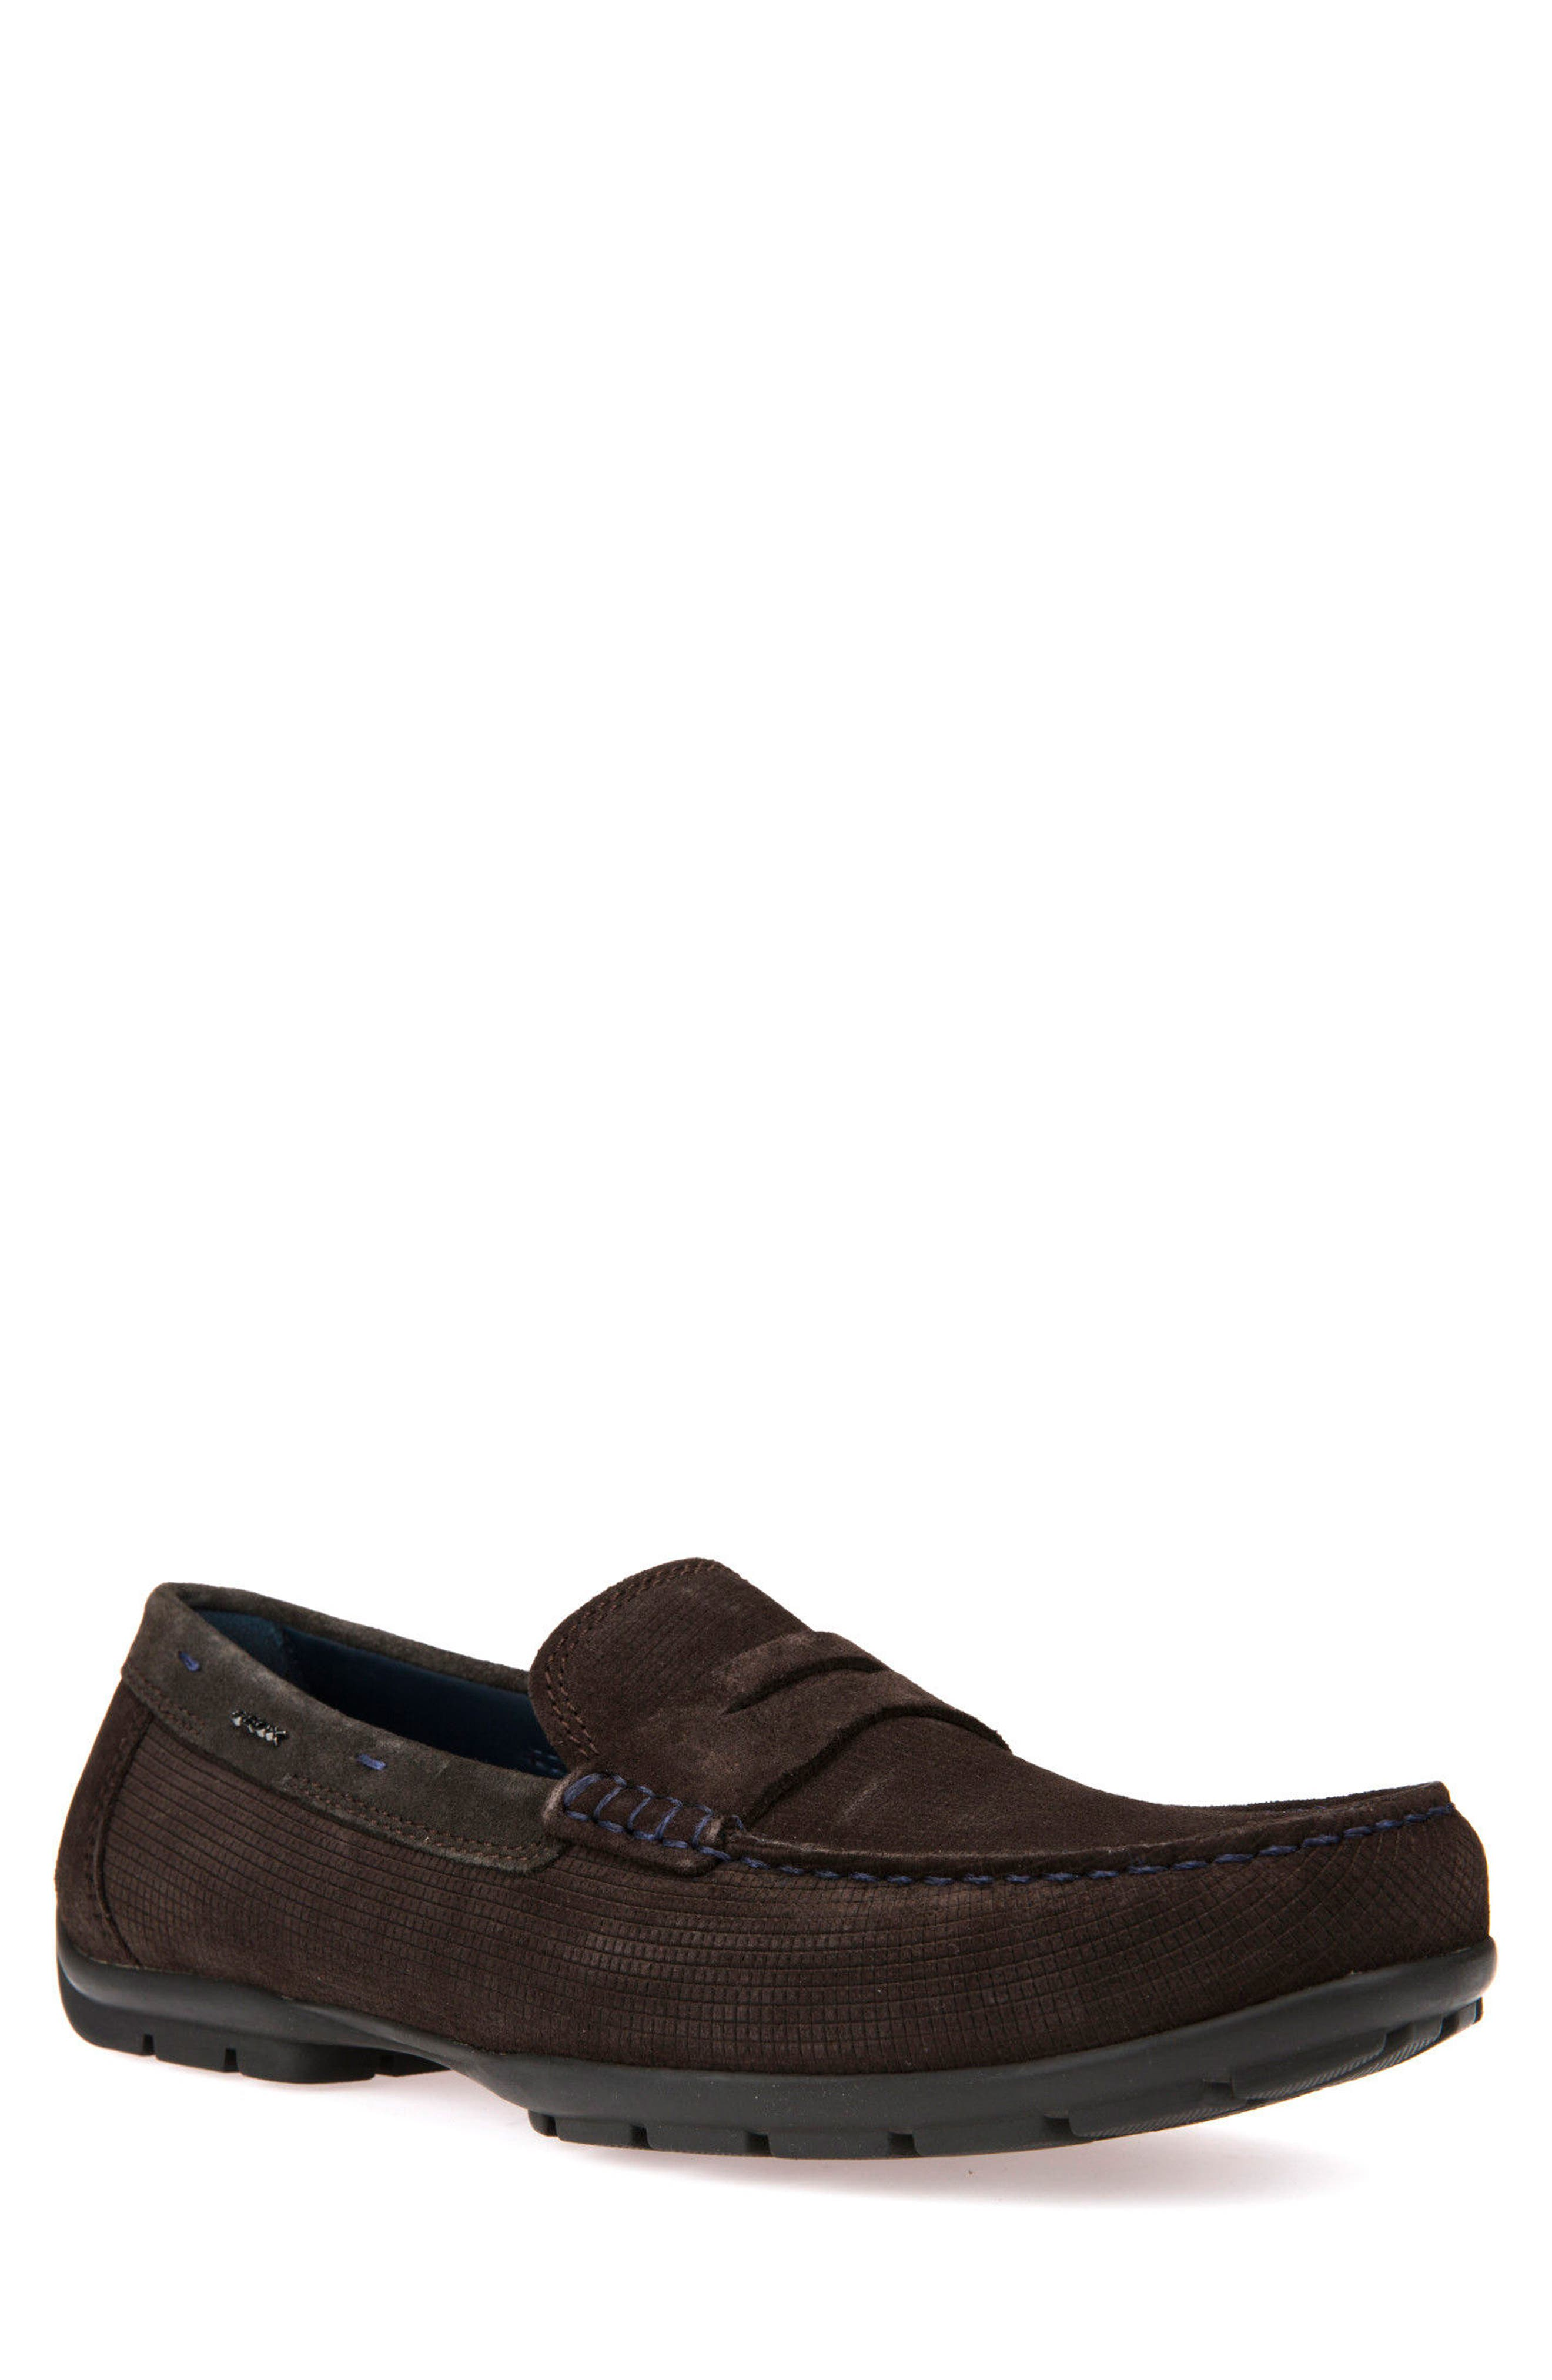 GEOX MONET REGULAR/WIDE INSOLE MOCCASIN